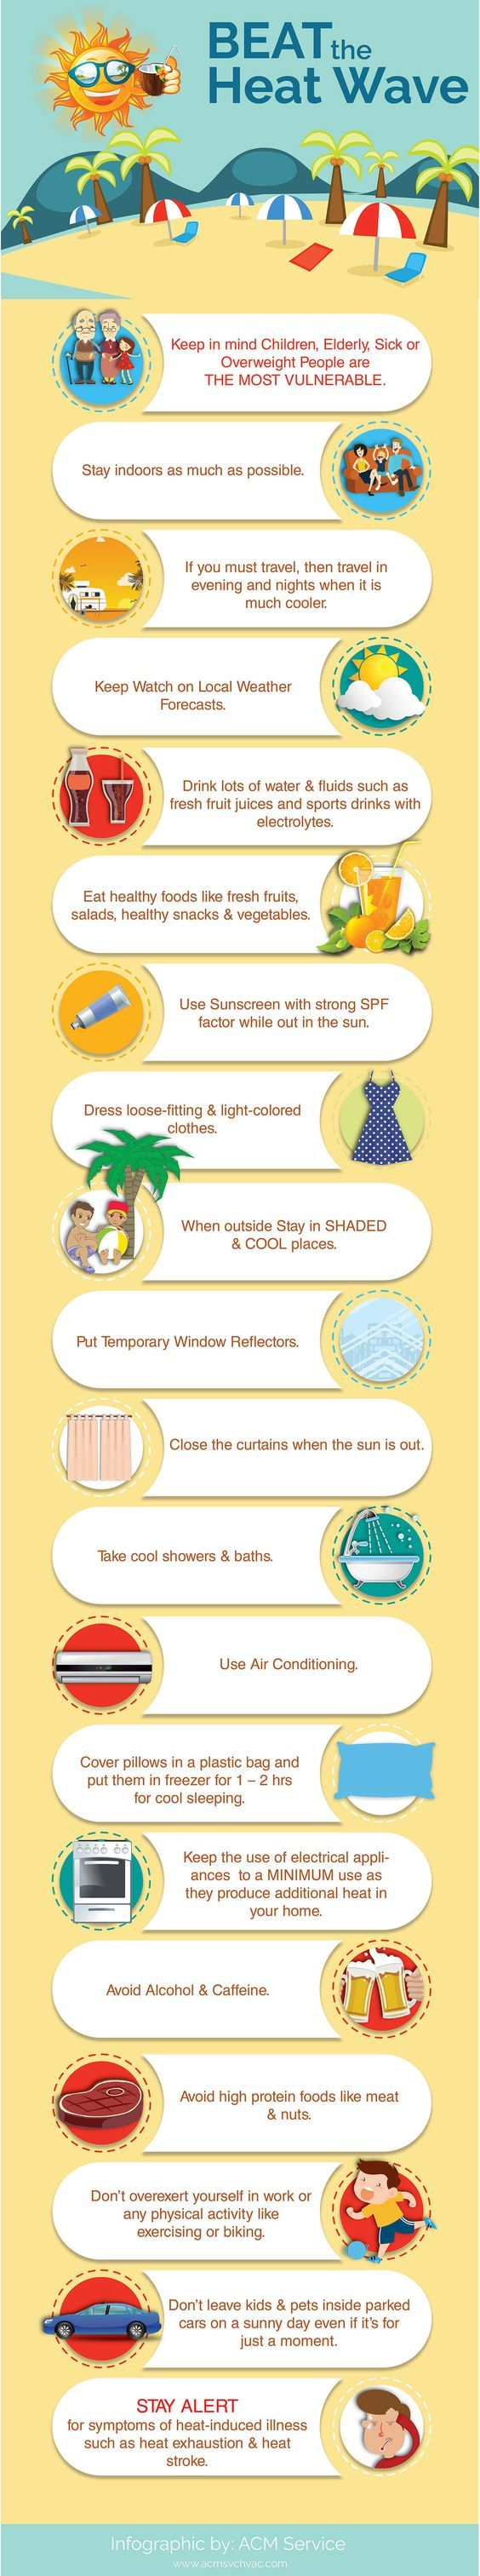 Having a hard time battling the hot weather in summer? Then, check out this infographic to know more about how to beat the heat wave & stay cool in summer.: